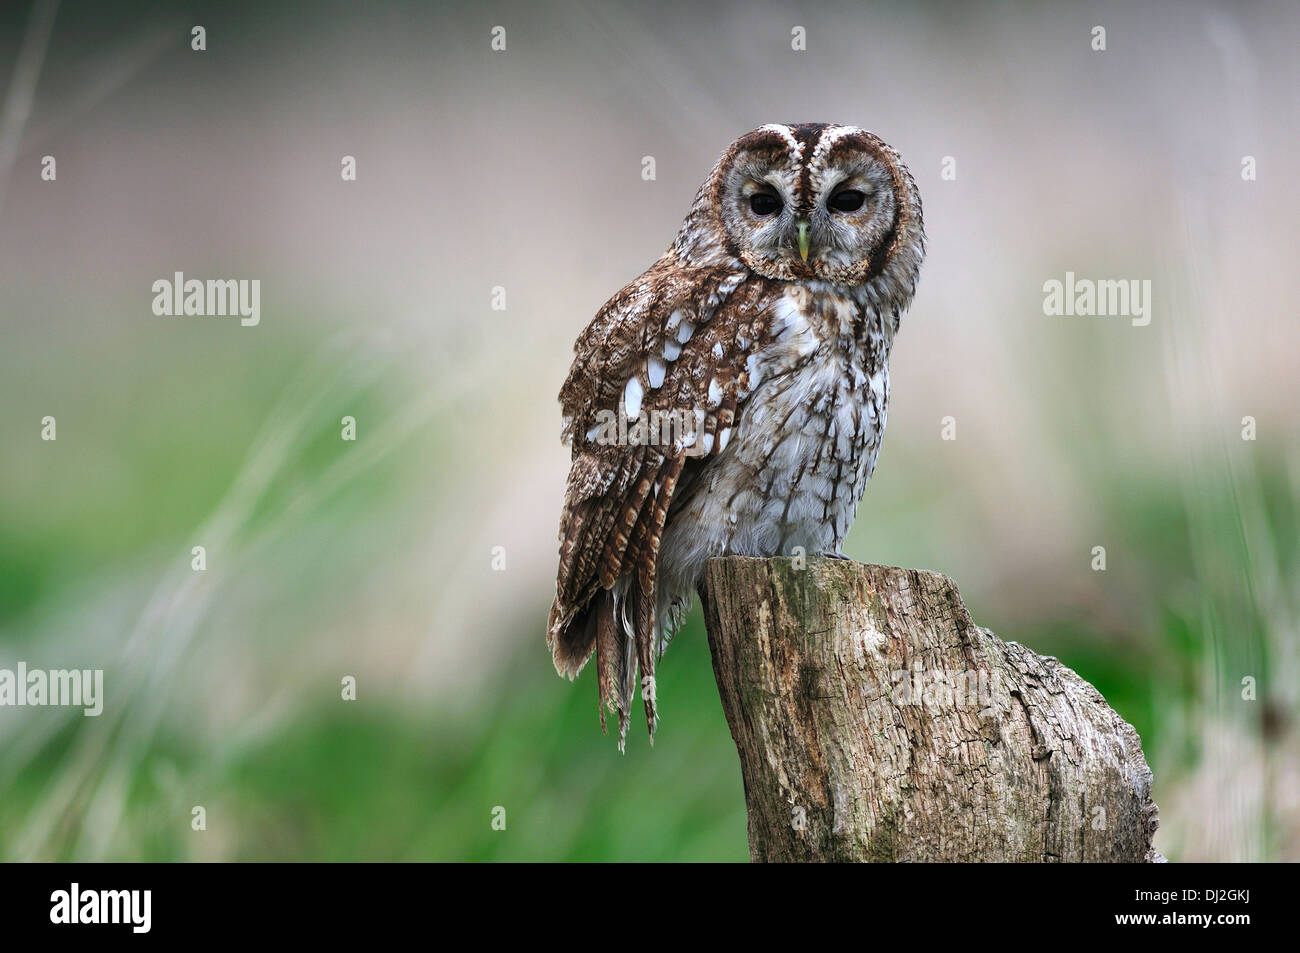 A tawny owl perched on a tree stump UK - Stock Image